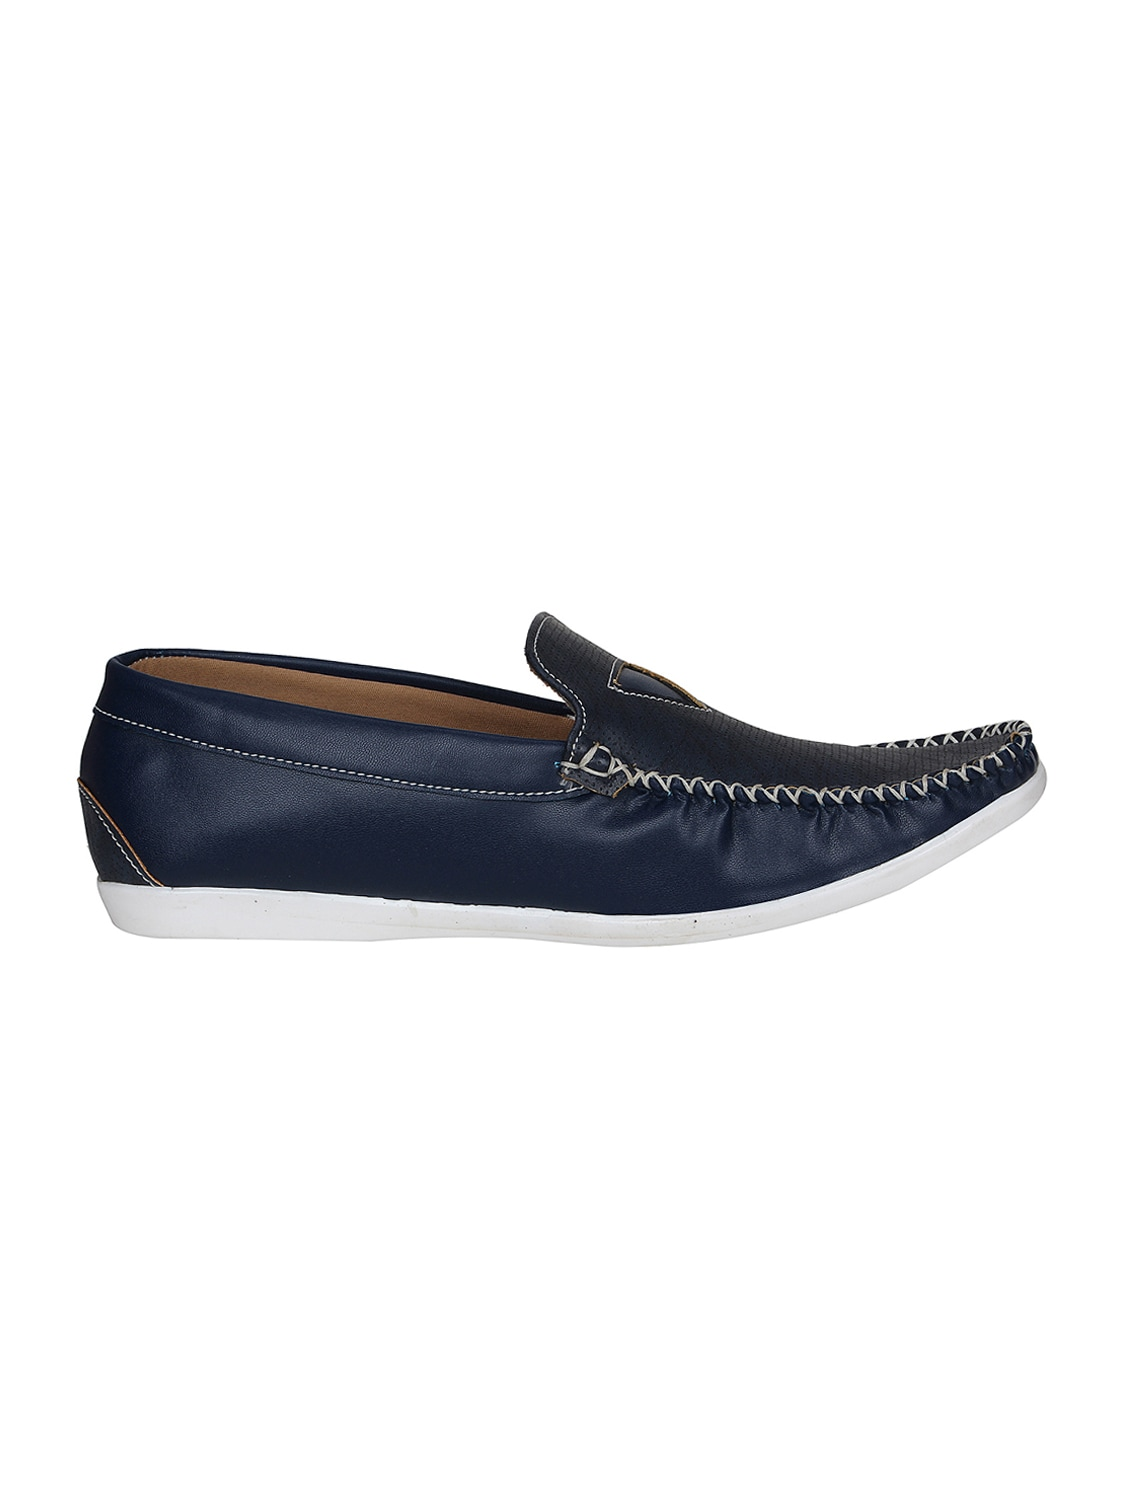 965acc451f9 Buy Blue Leatherette Slip On Loafers for Men from Romeo for ₹500 at 50% off